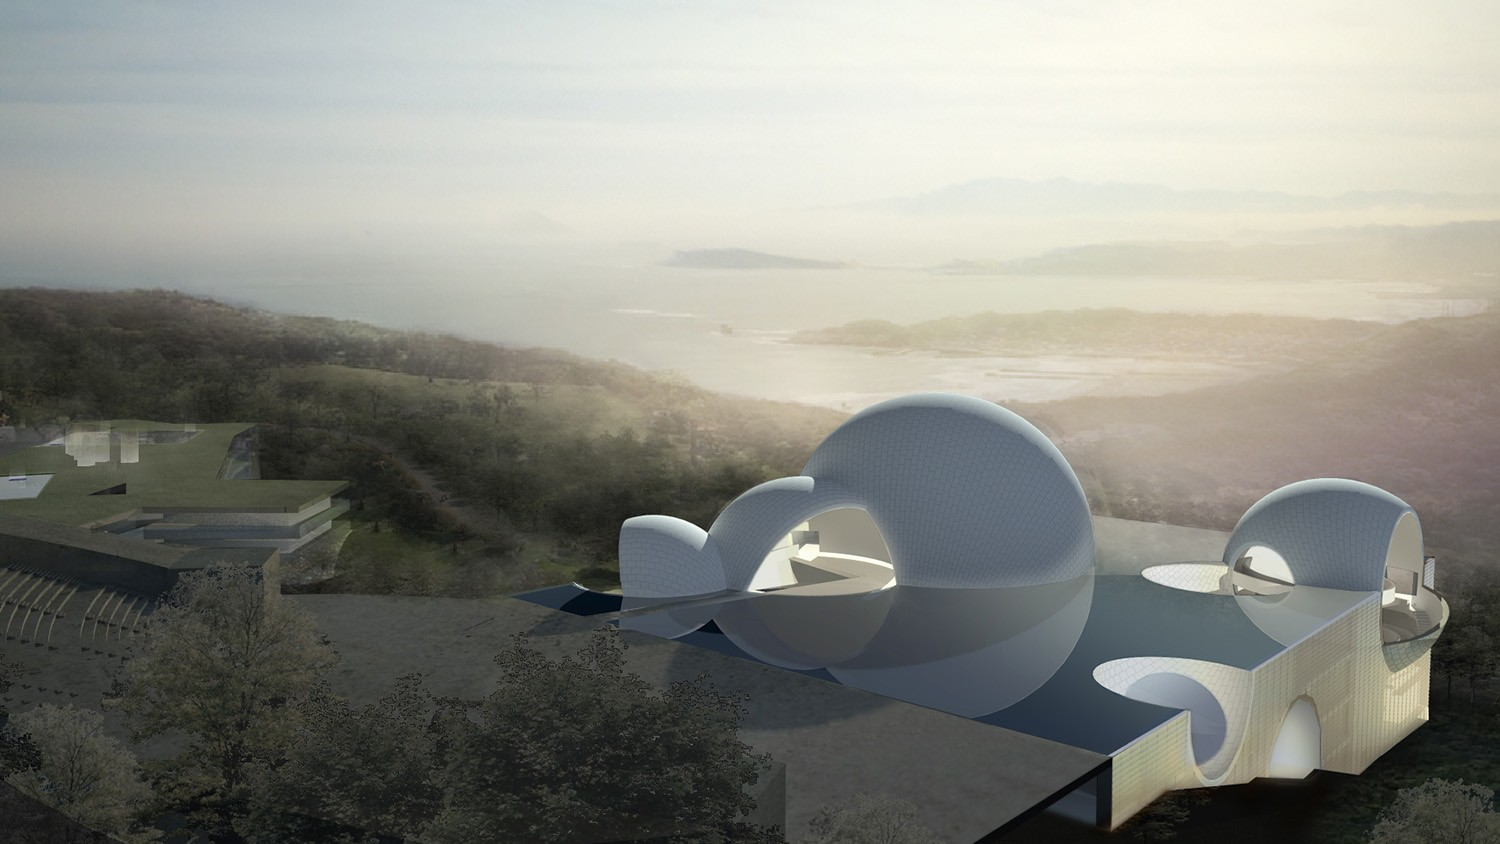 https://stevenholl.sfo2.digitaloceanspaces.com/uploads/projects/project-images/StevenHollArchitects_Necropolis_SHA_07_oceanic-exterior-viewNEW_WH.jpg